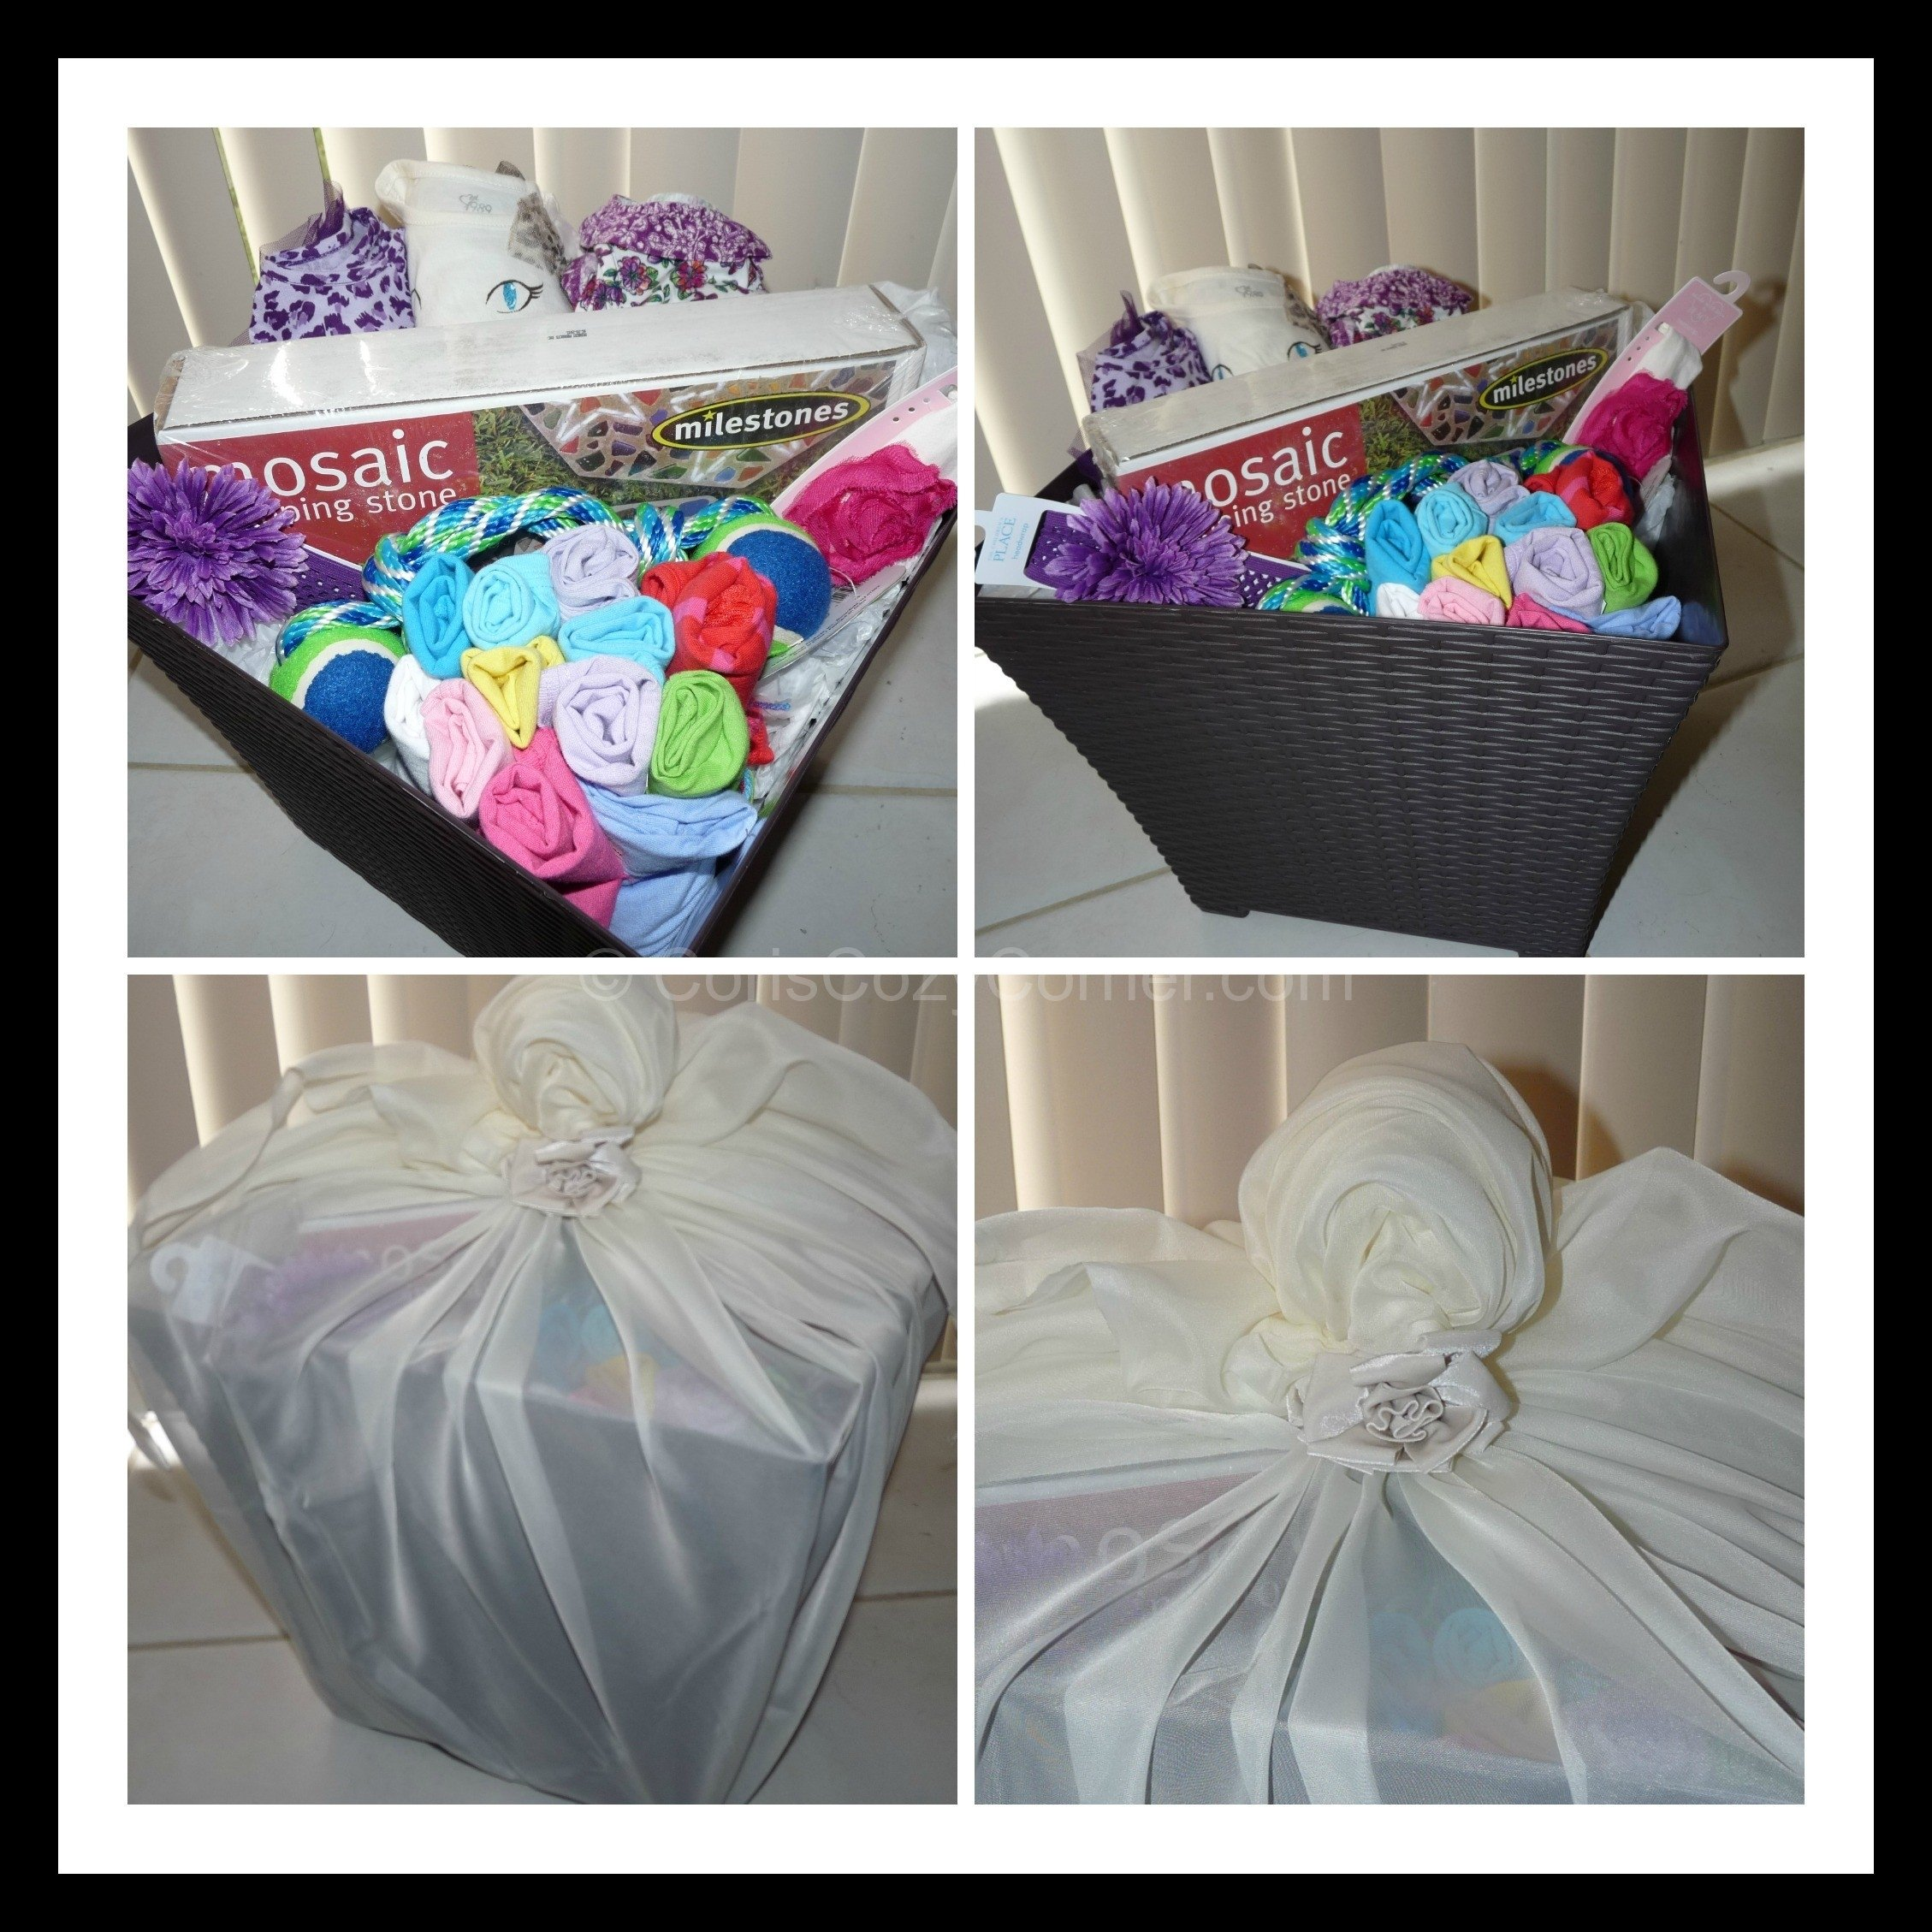 10 Attractive Housewarming Gift Ideas For Couple housewarming gift ideas for couple home design lakaysports 1 2021